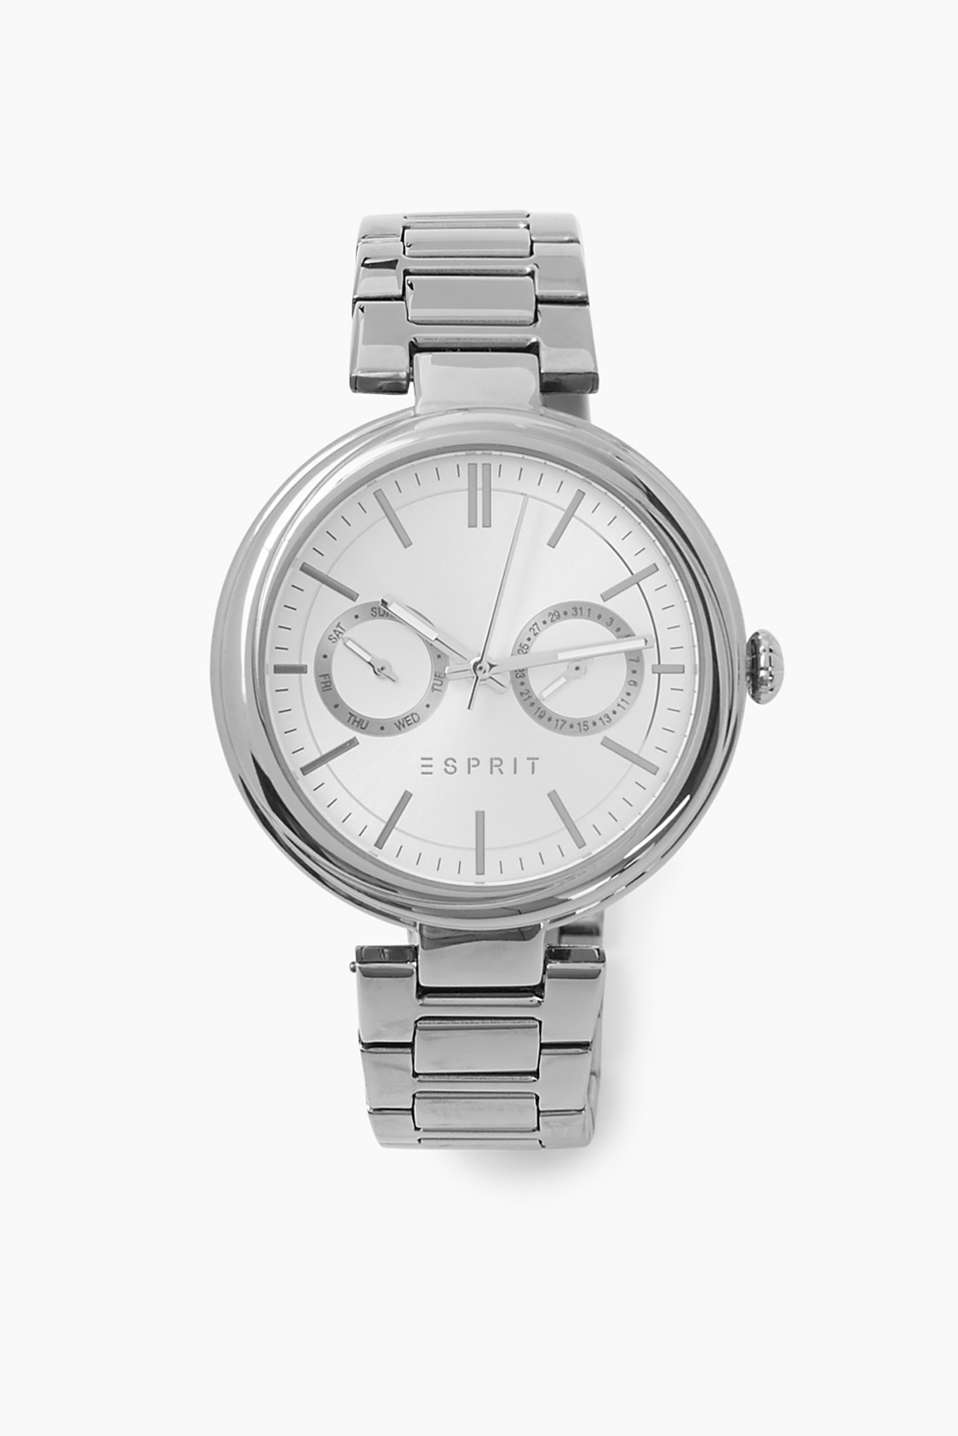 Polished stainless-steel casing and strap, date display featuring day and numerical date, Ø approx. 36 mm